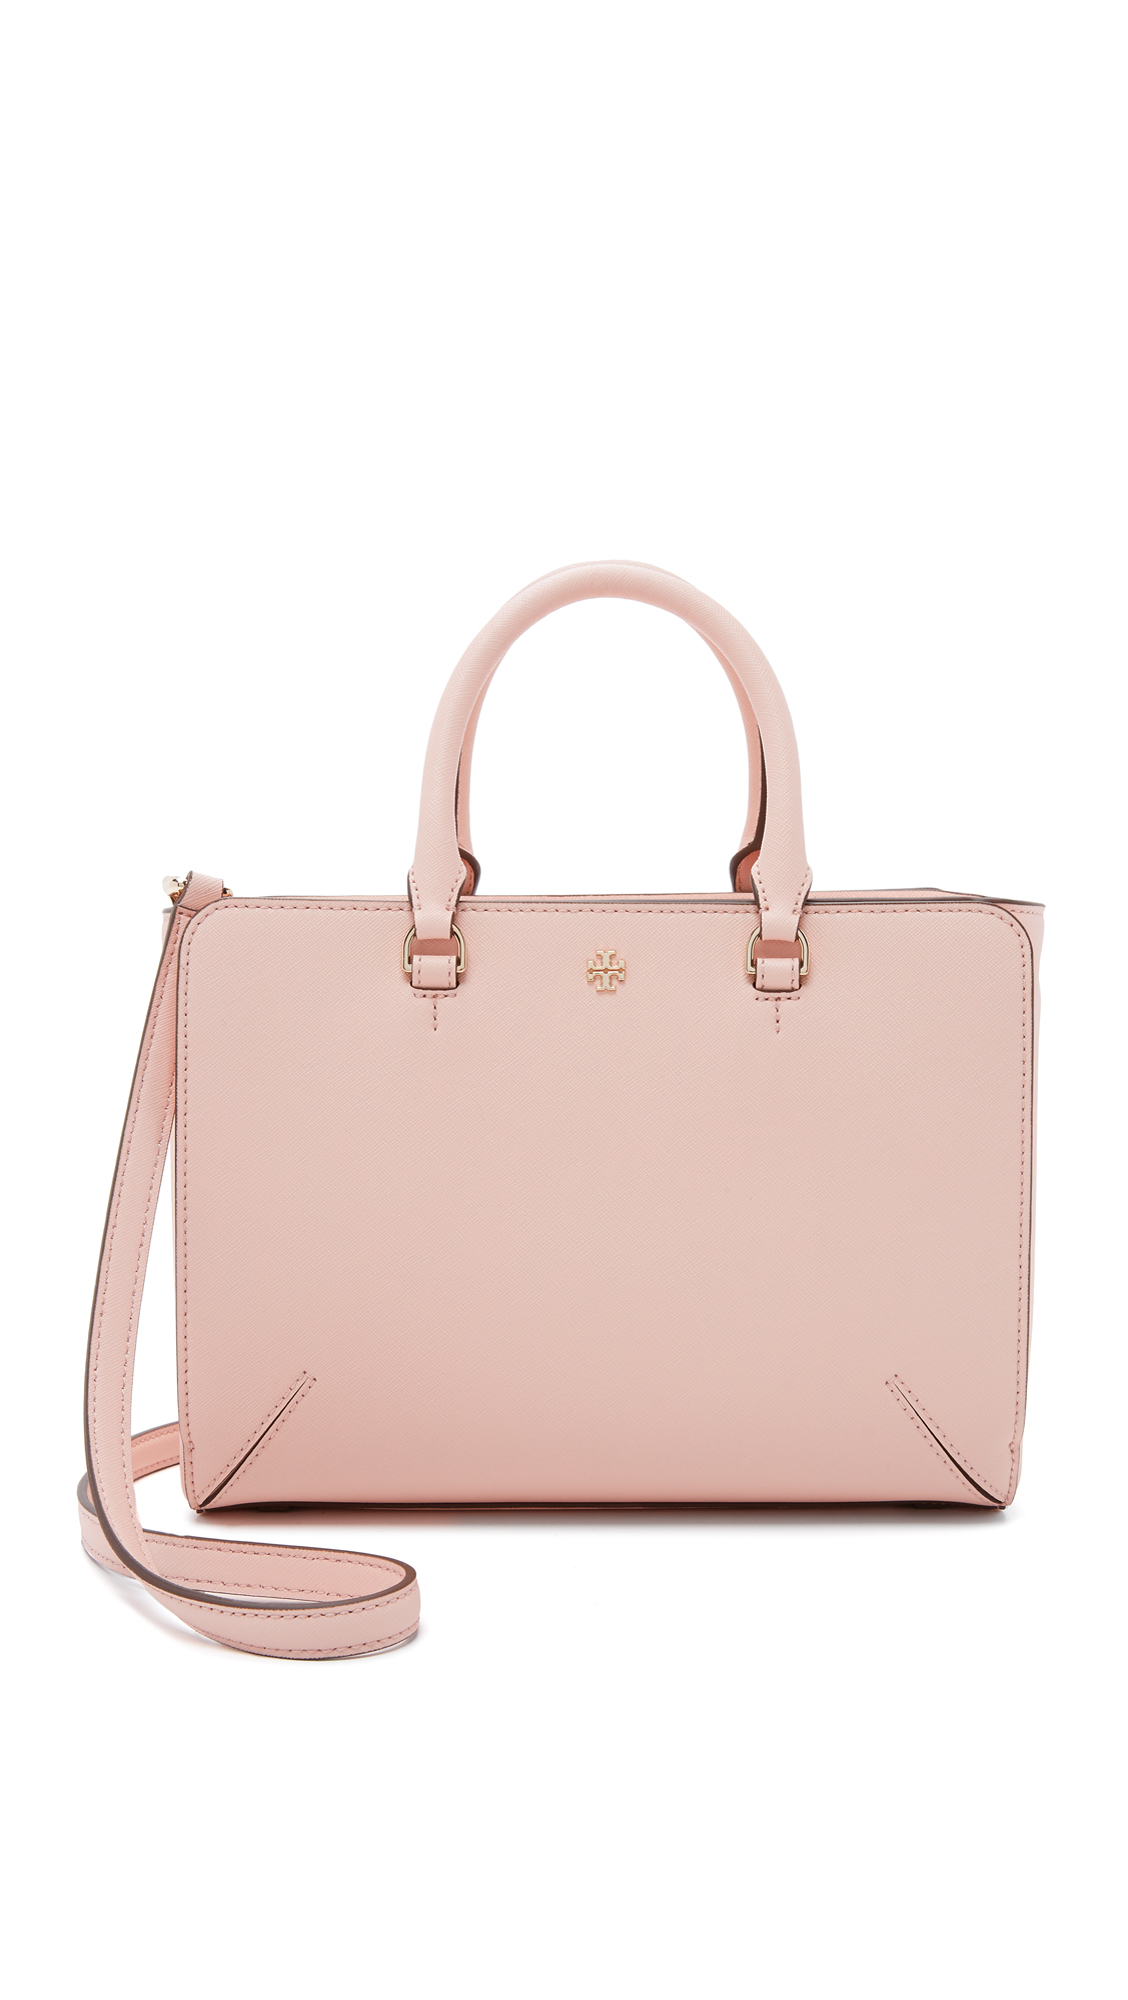 f91c495fc495 Lyst - Tory Burch Robinson Small Zip Tote in Pink